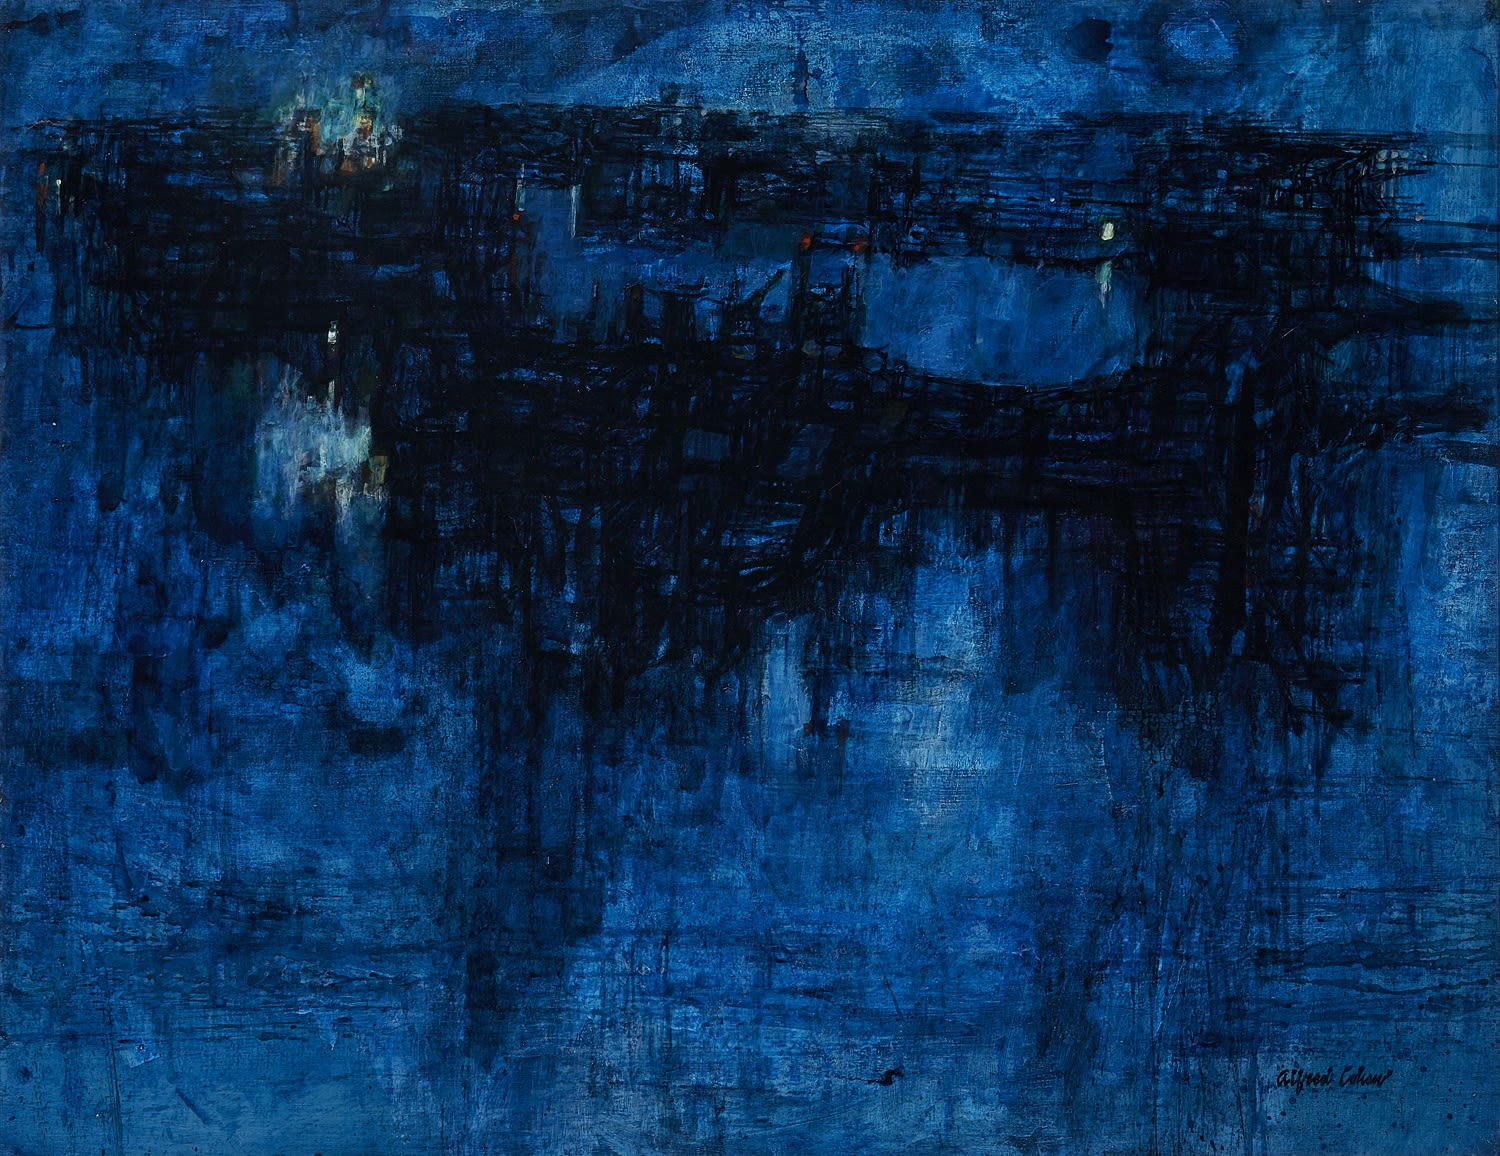 Alfred Cohen (1920-2001) Docklands Night 1961 Oil on canvas 71.1 x 91.4 cm Collection: The Lampon Family © Estate of Alfred Cohen 2020